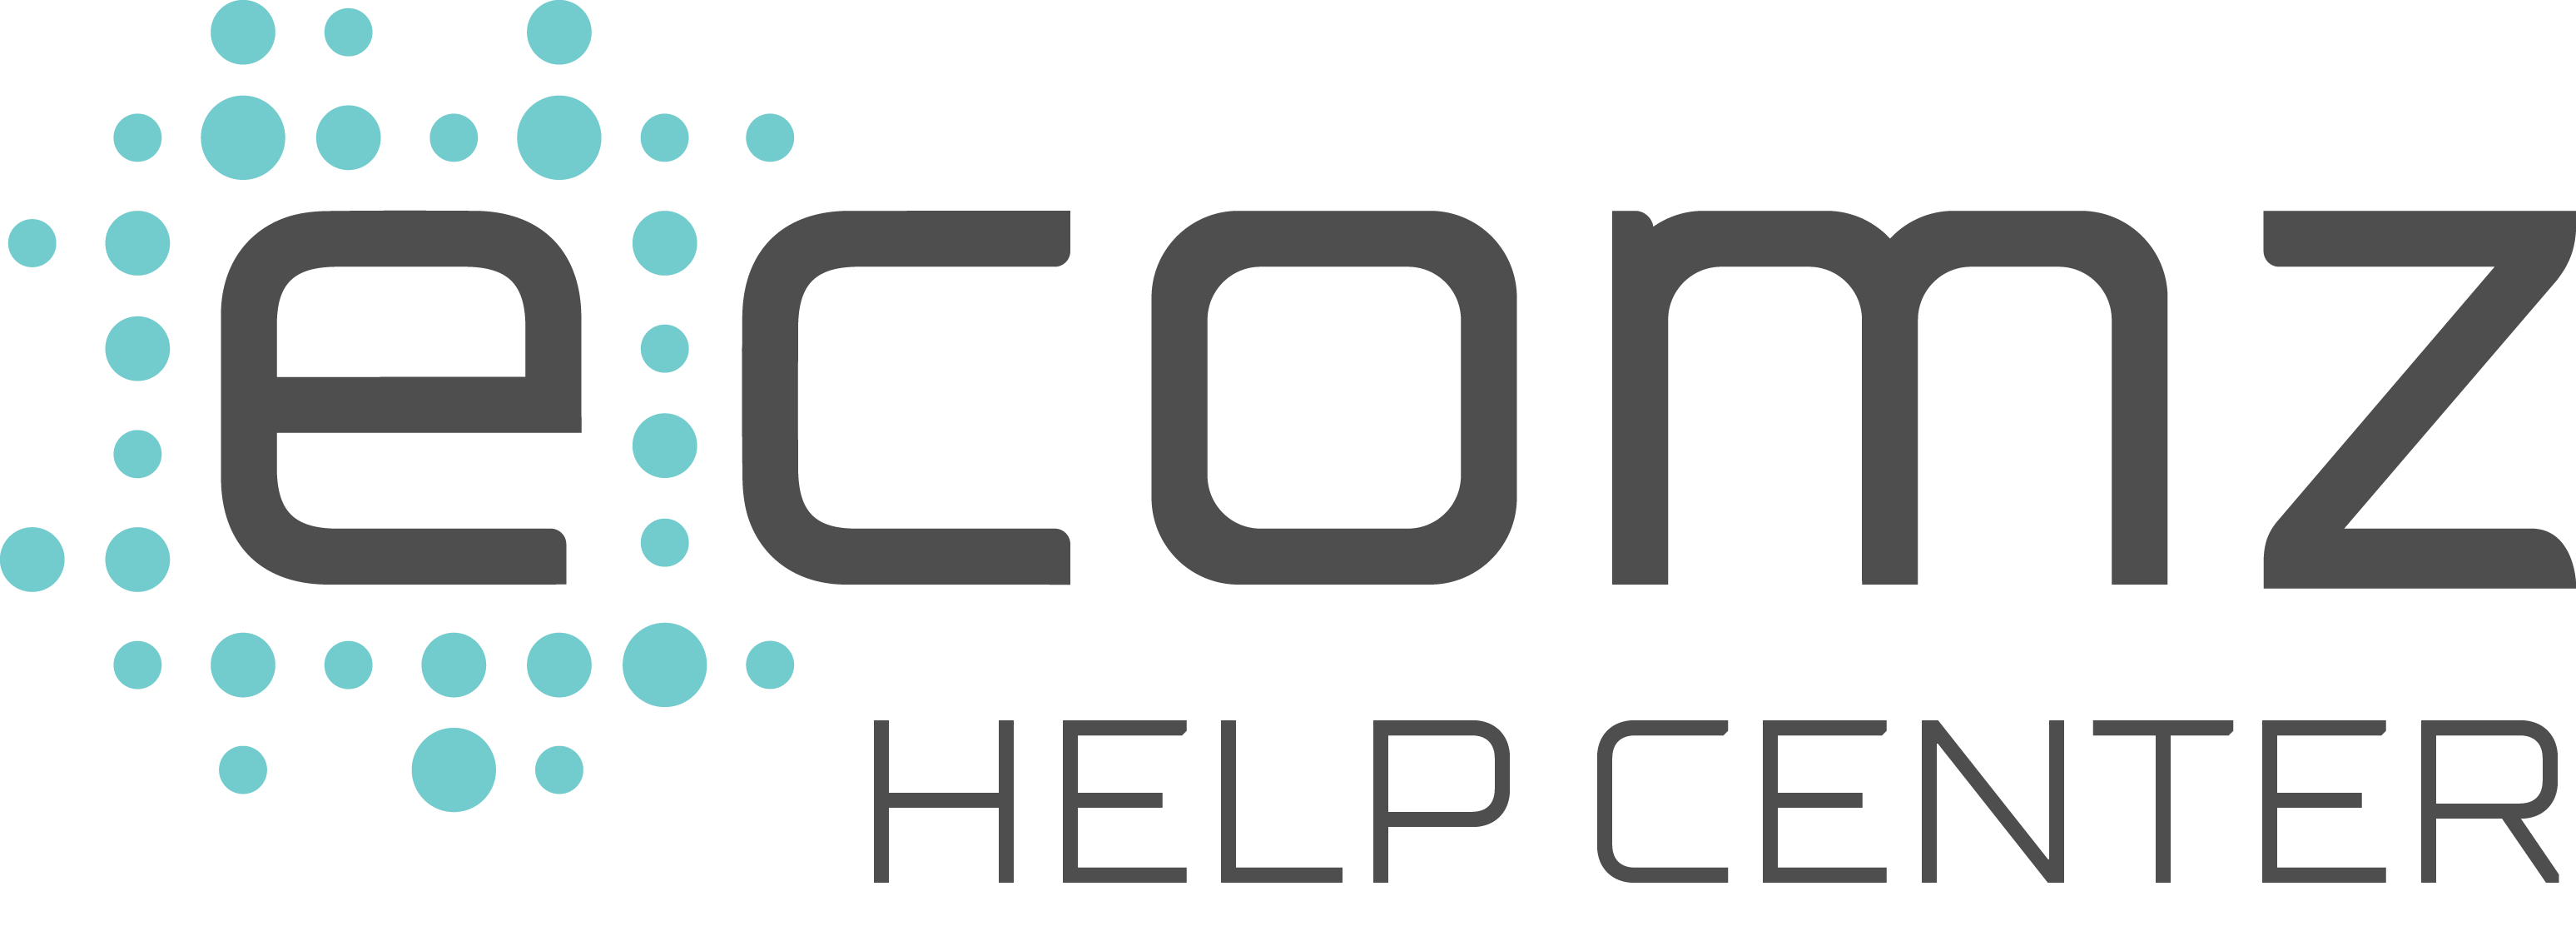 ecomz Help Center Help Center home page